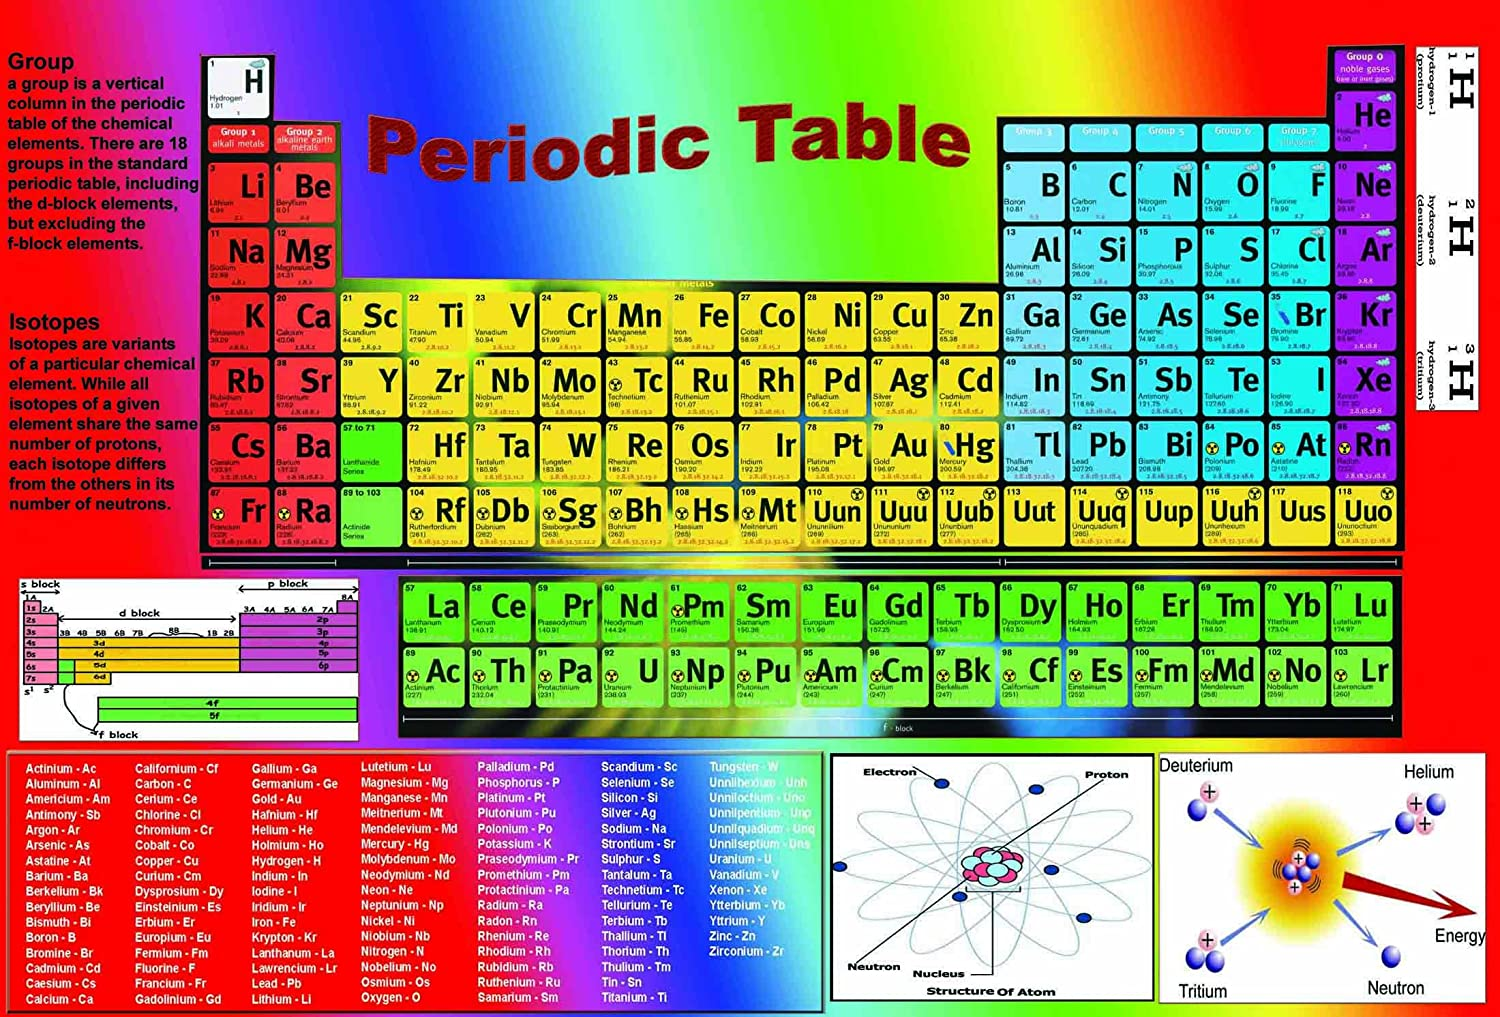 Laminated new periodic table elements chemistry chemical science laminated new periodic table elements chemistry chemical science educational classroom school poster wall chart study aid poster amazon office gamestrikefo Images